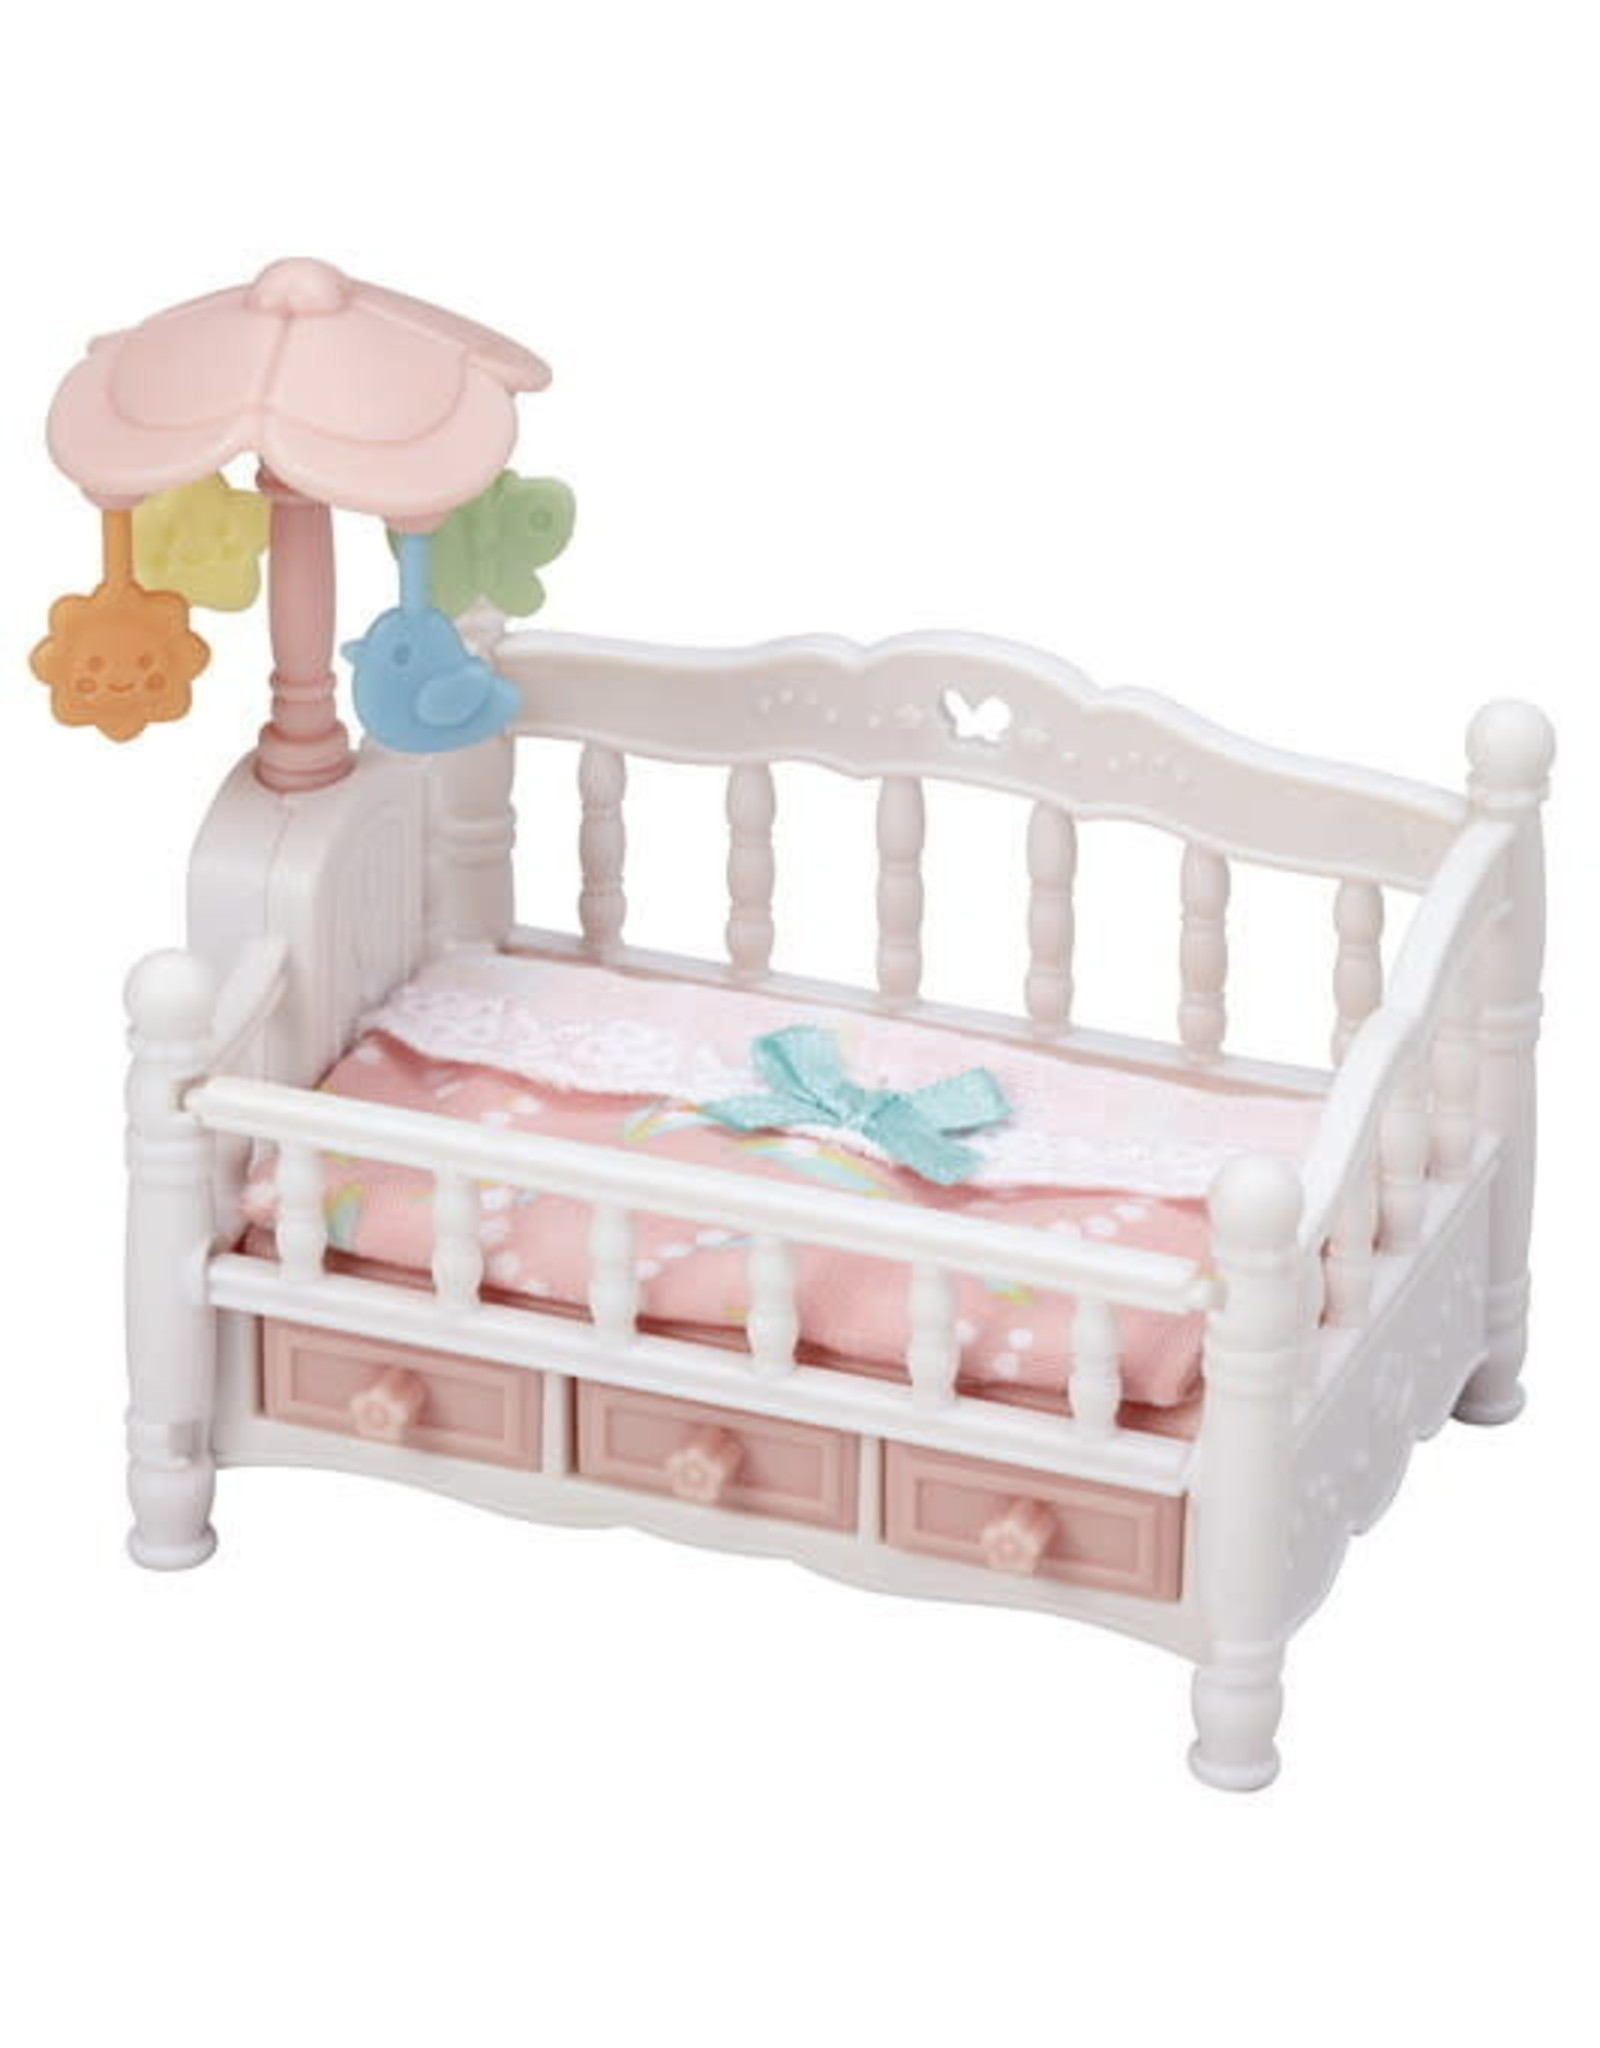 Calico Critters Crib With Mobile